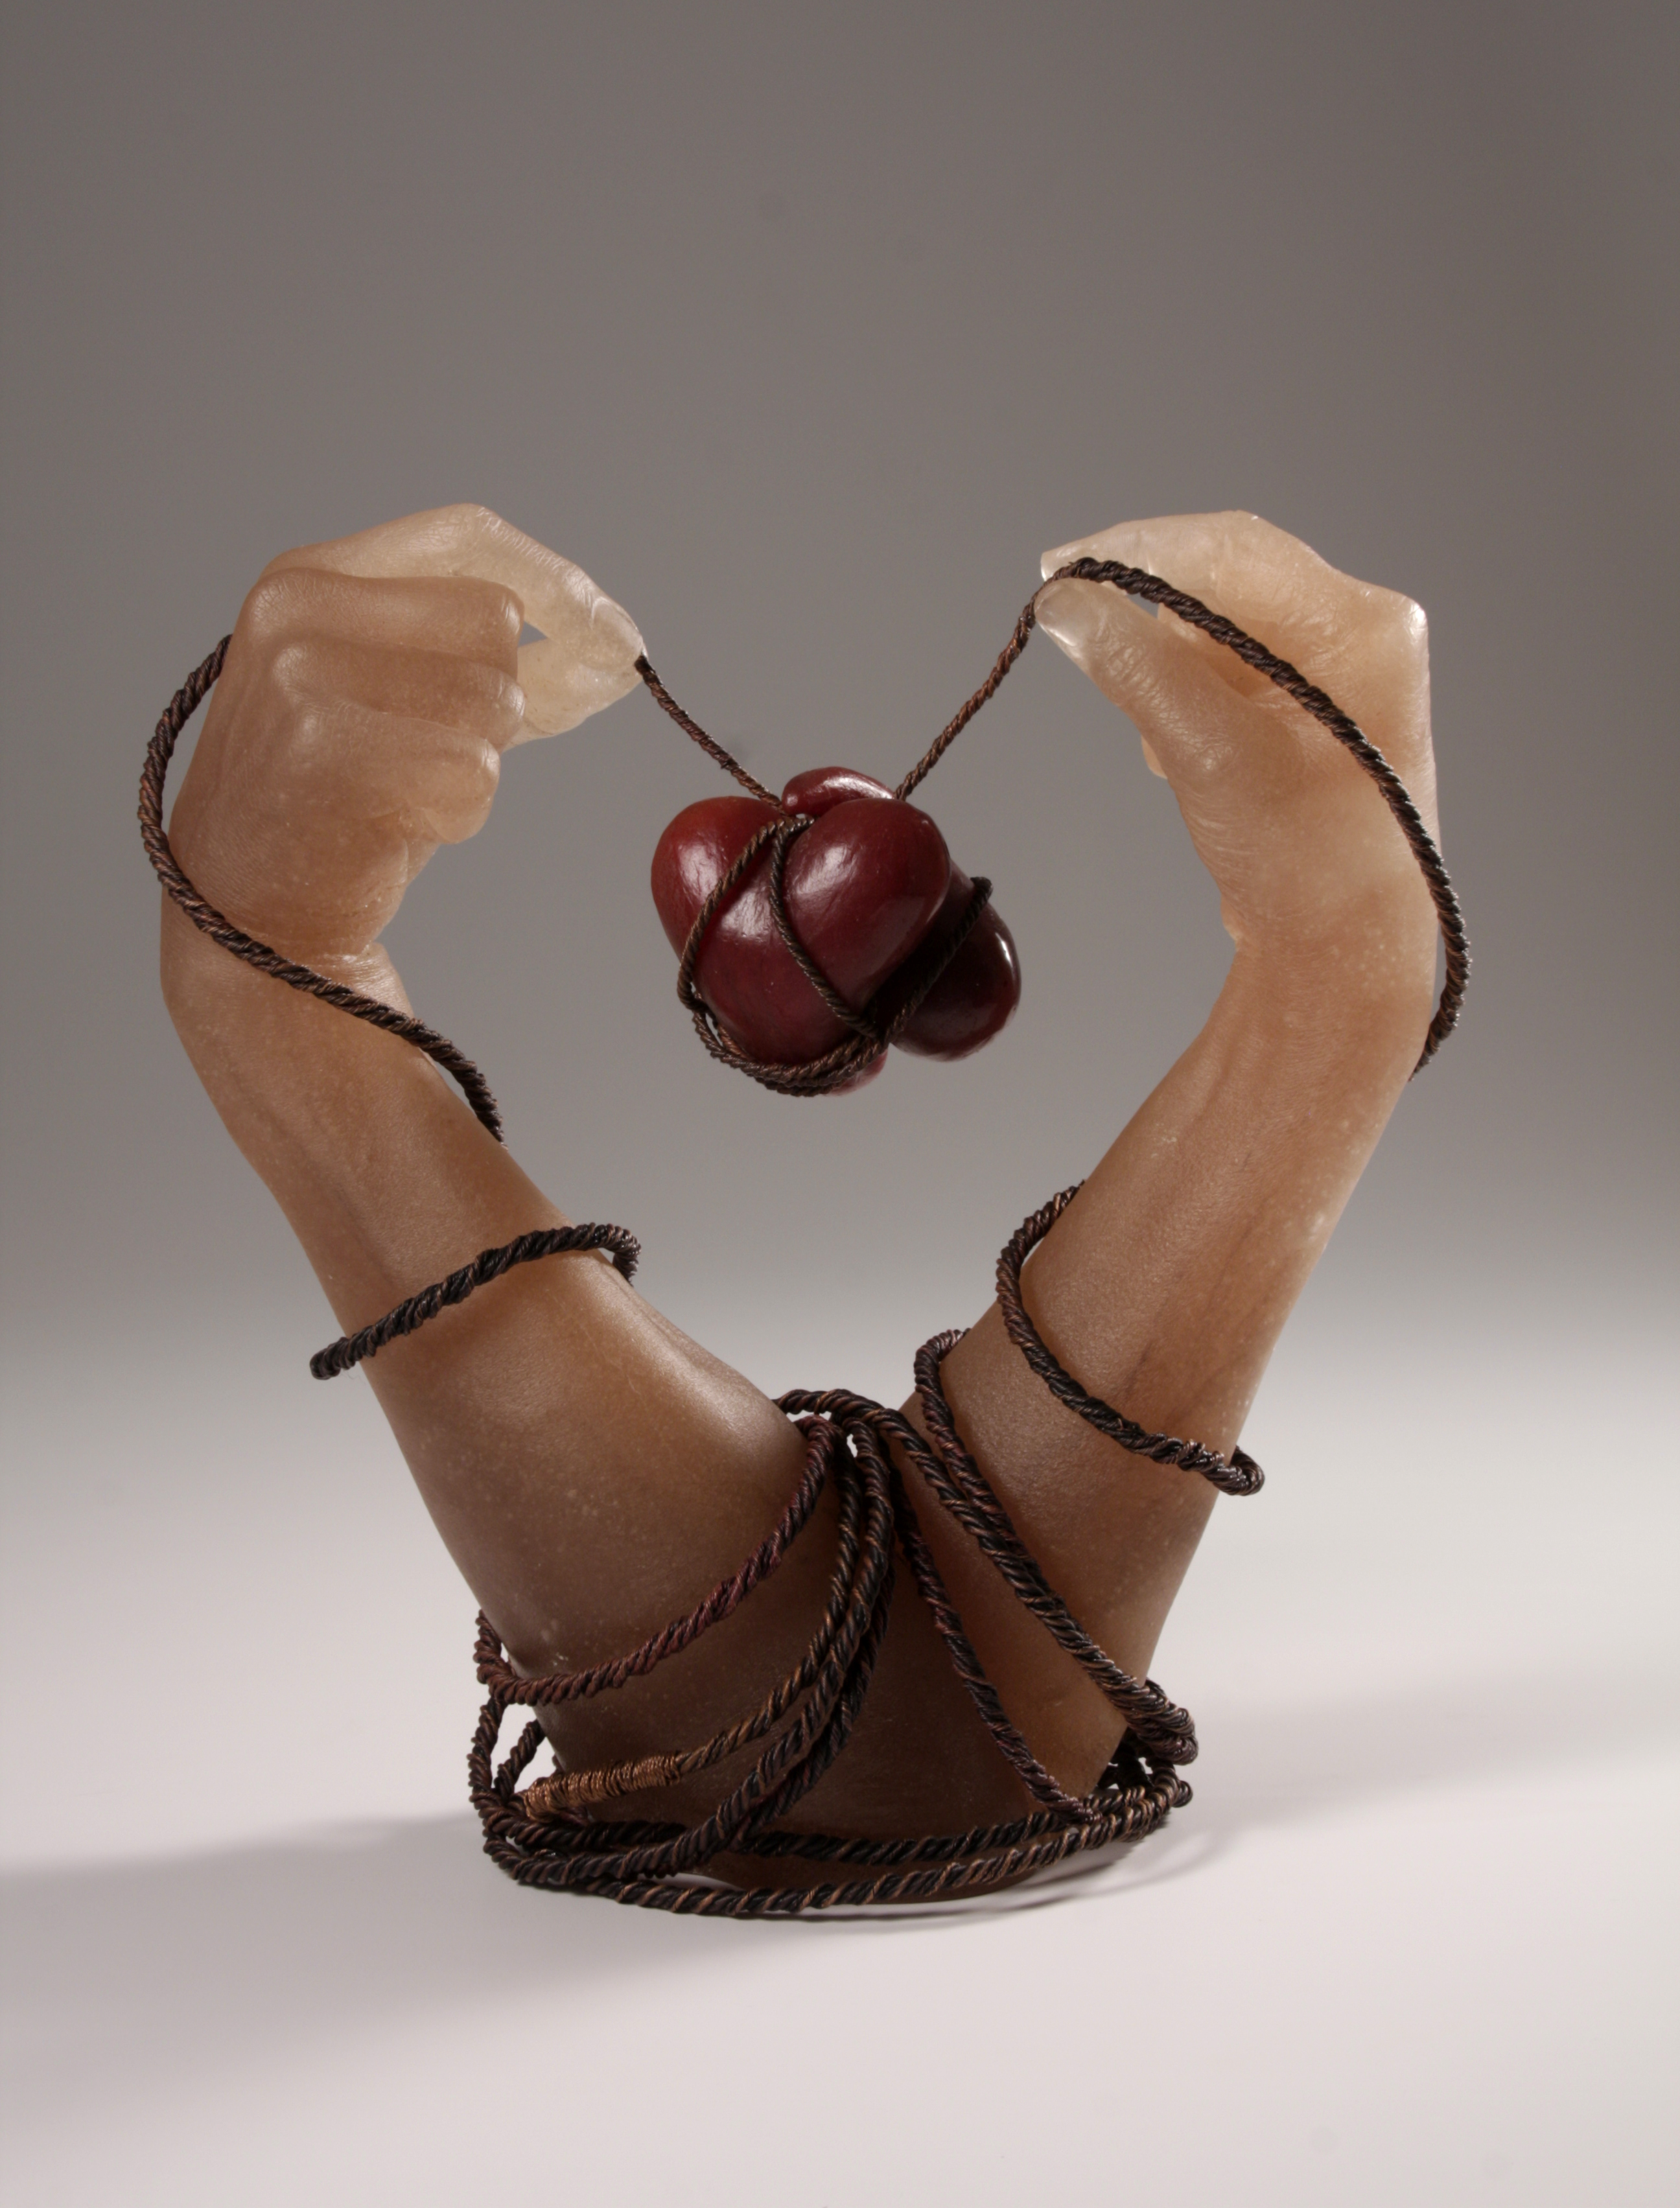 Sculpture of glass hands holding wire that binds two hearts between hands.